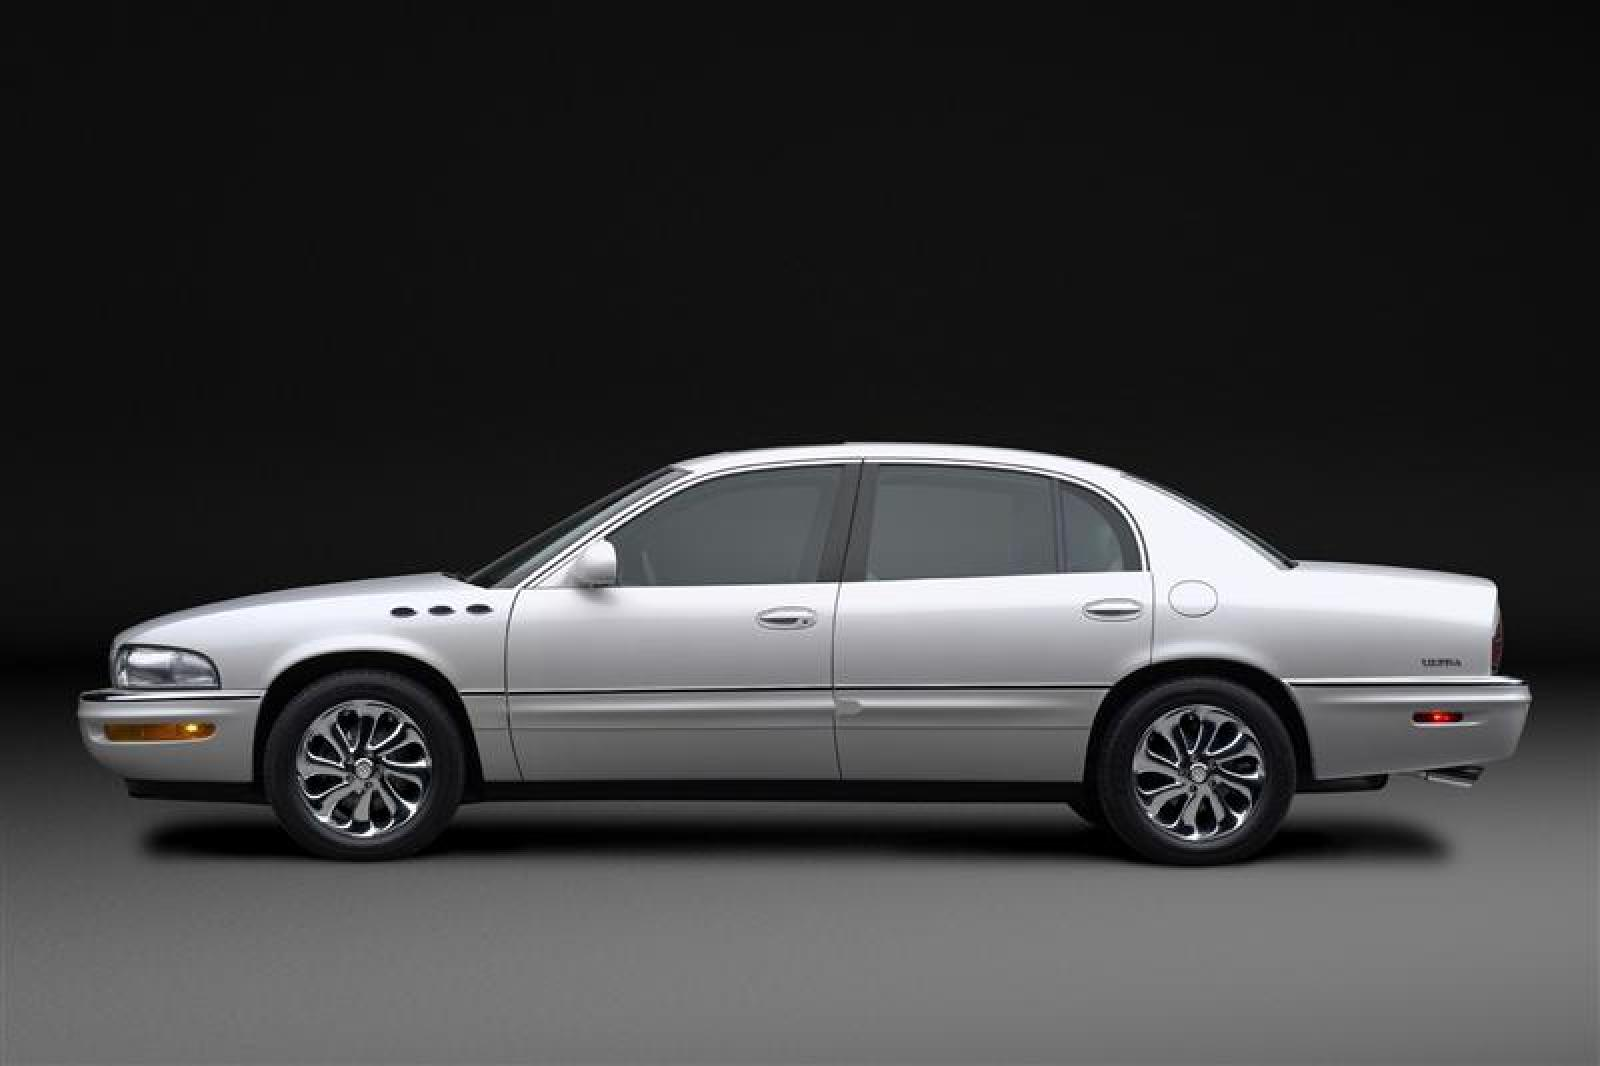 2004 Buick Park Avenue Information And Photos Zombiedrive